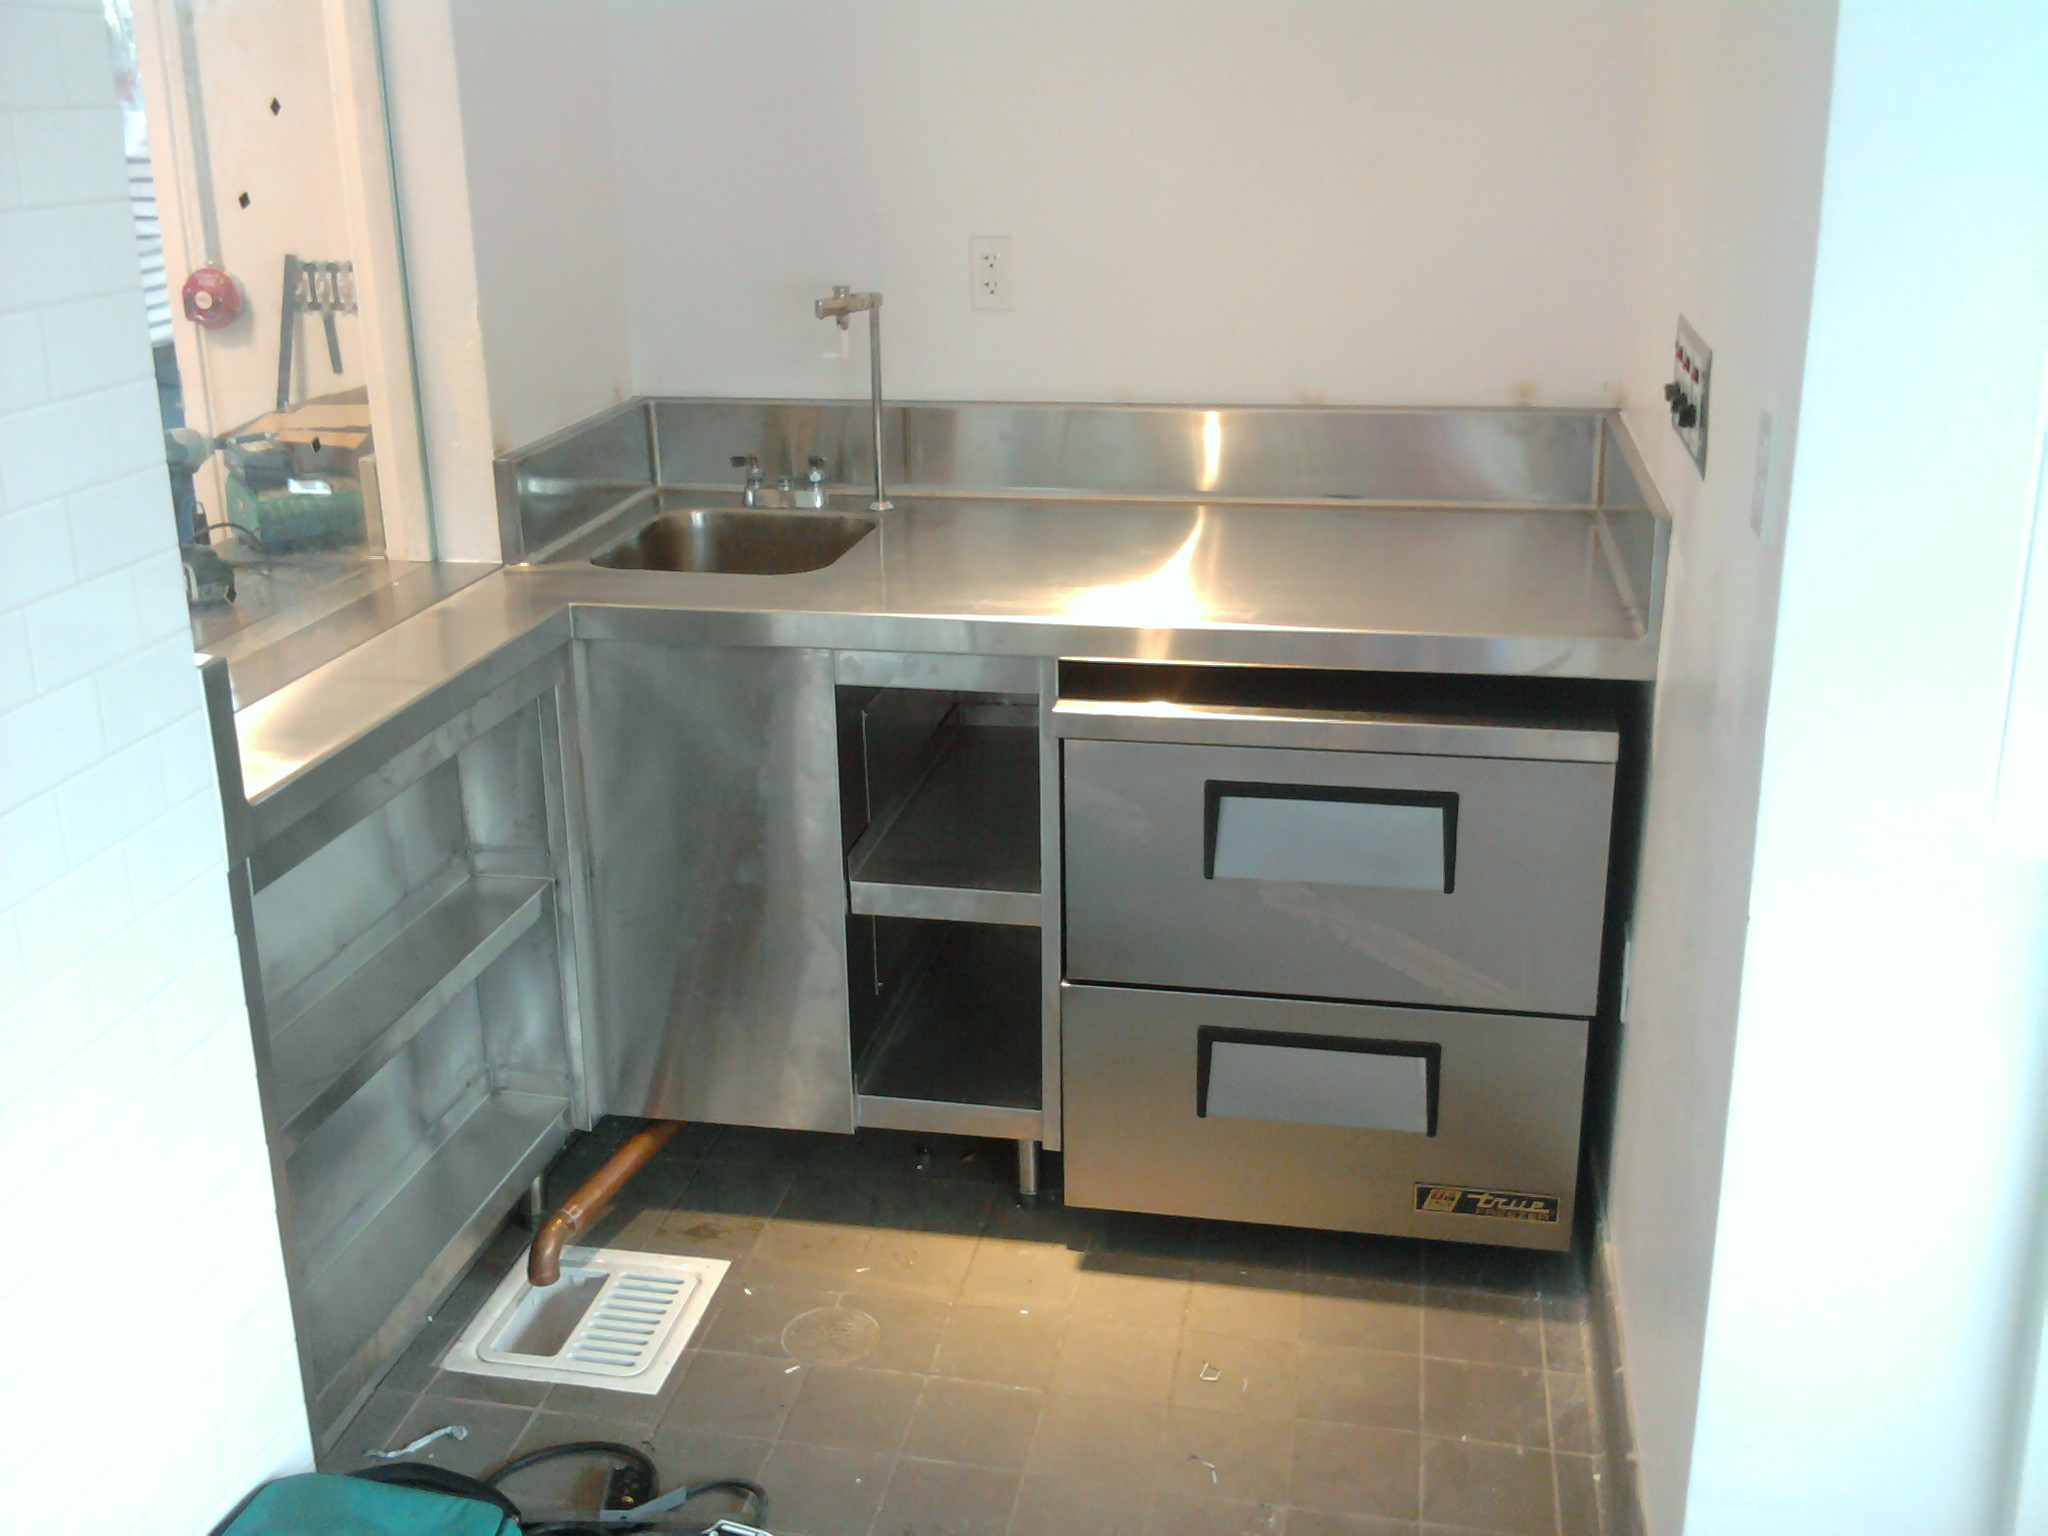 Stainless Steel Countertop With Shelves - Jnl Stainless Inc